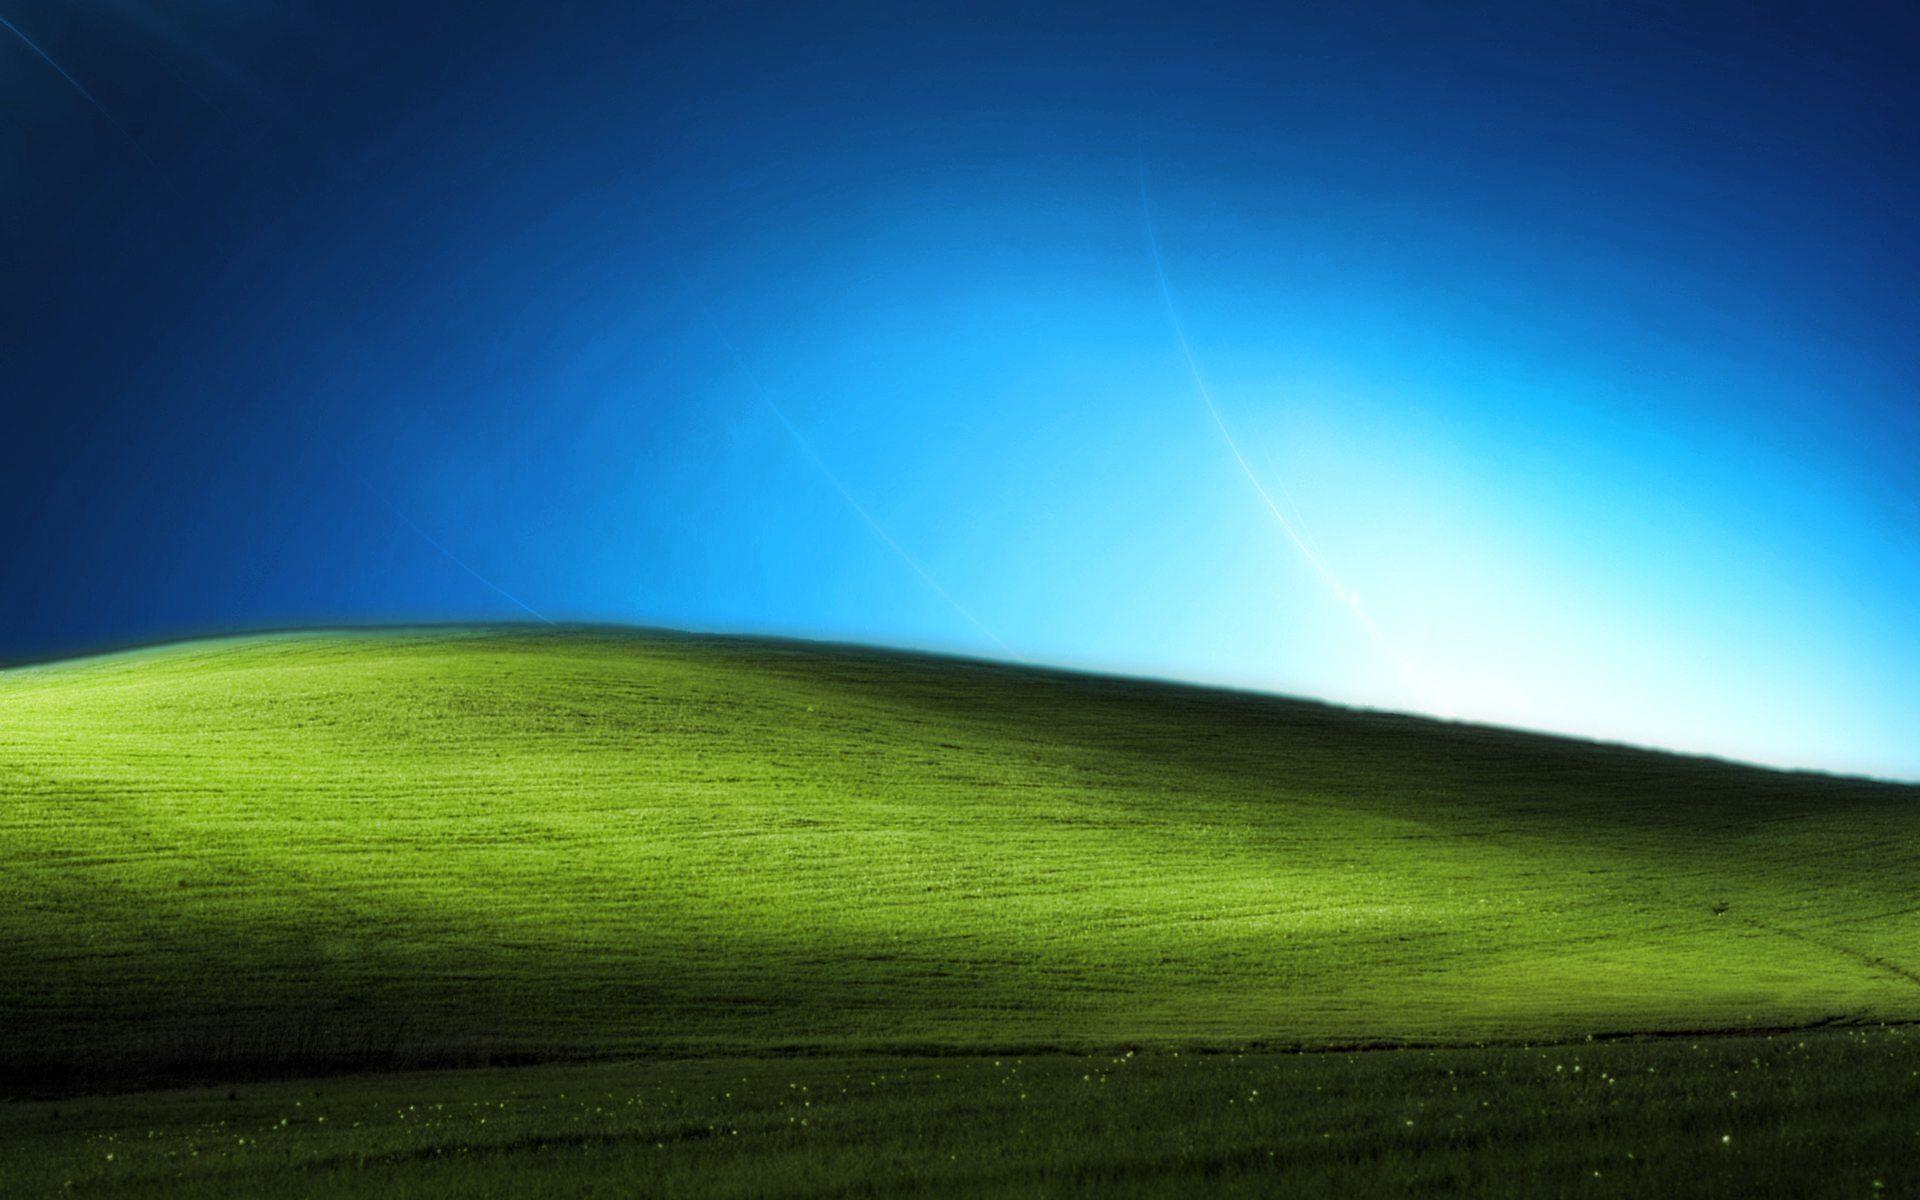 Hd windows wallpapers wallpaper cave for Window background